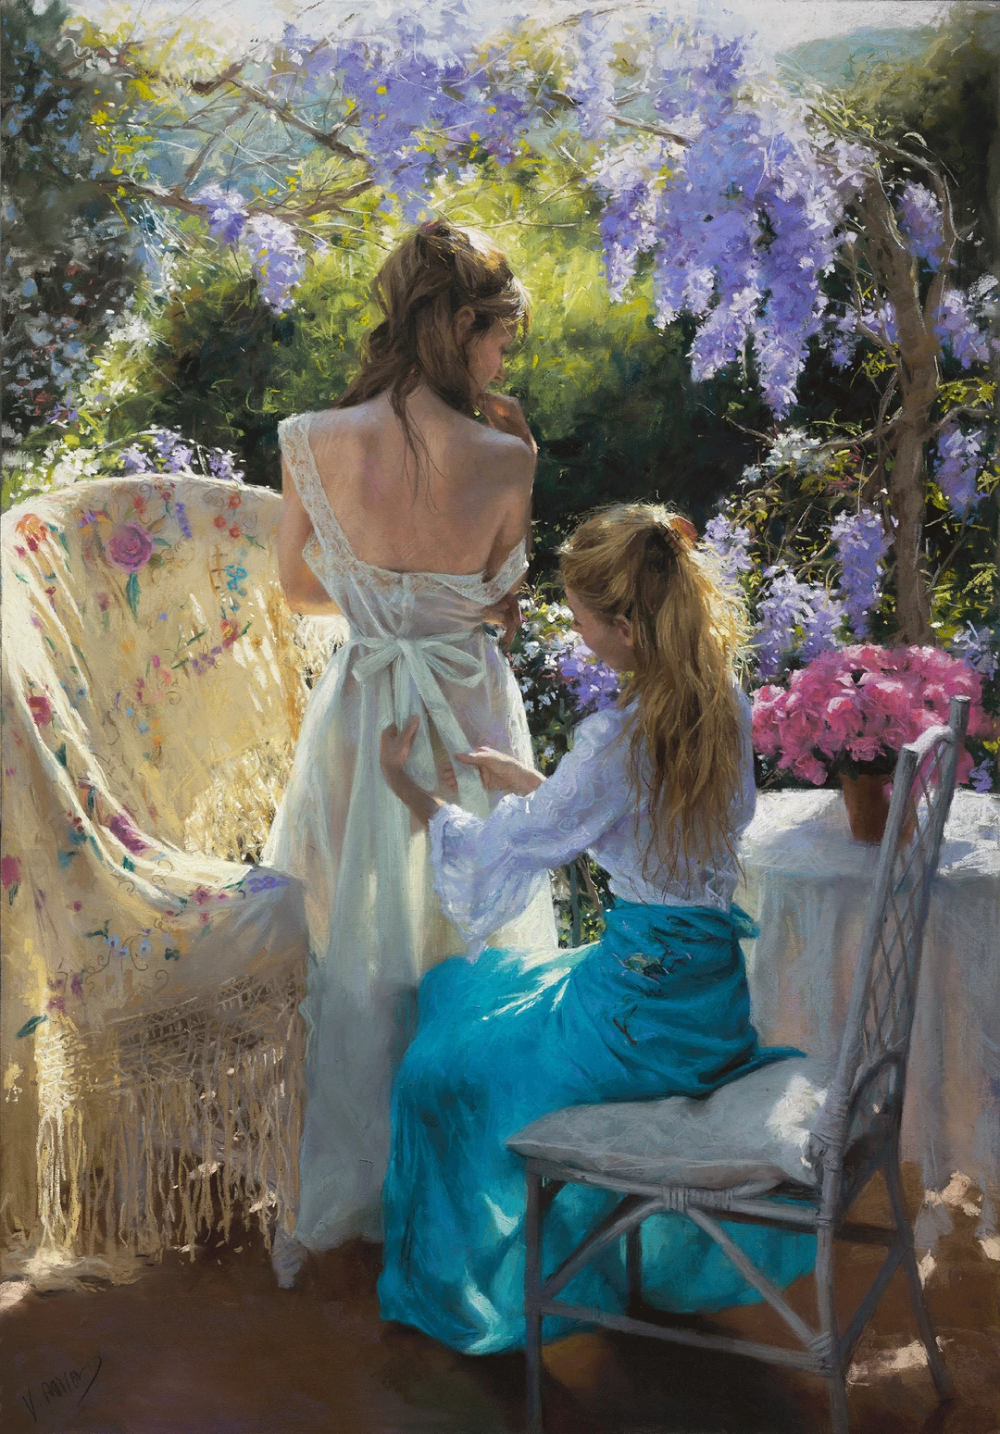 Spring by Vicente Romero Limited Edition Print in 2020